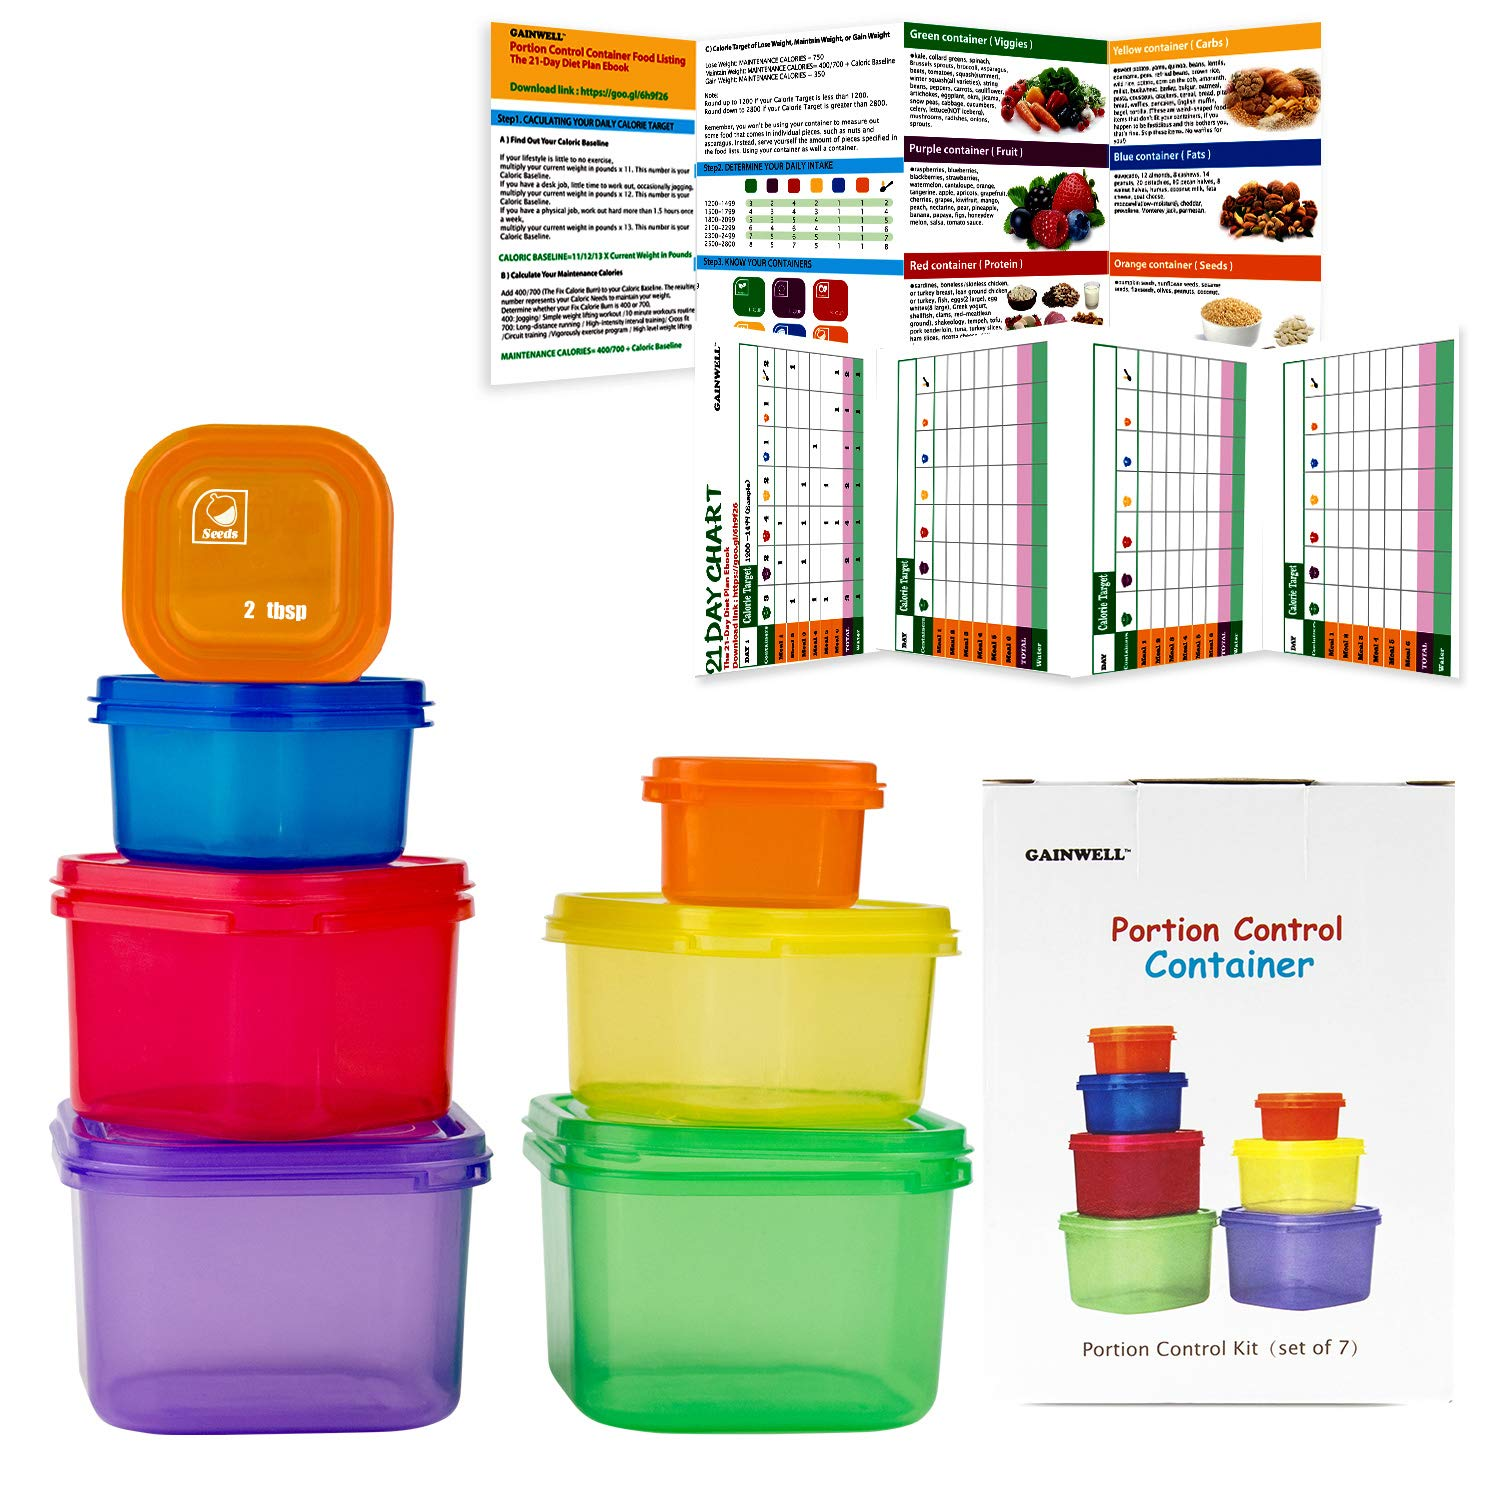 7 Piece Portion Control Container Set for Weight Loss - Portion Control Kit for Diet Meal Preparation - Comparable to 21 Day - GAINWELL